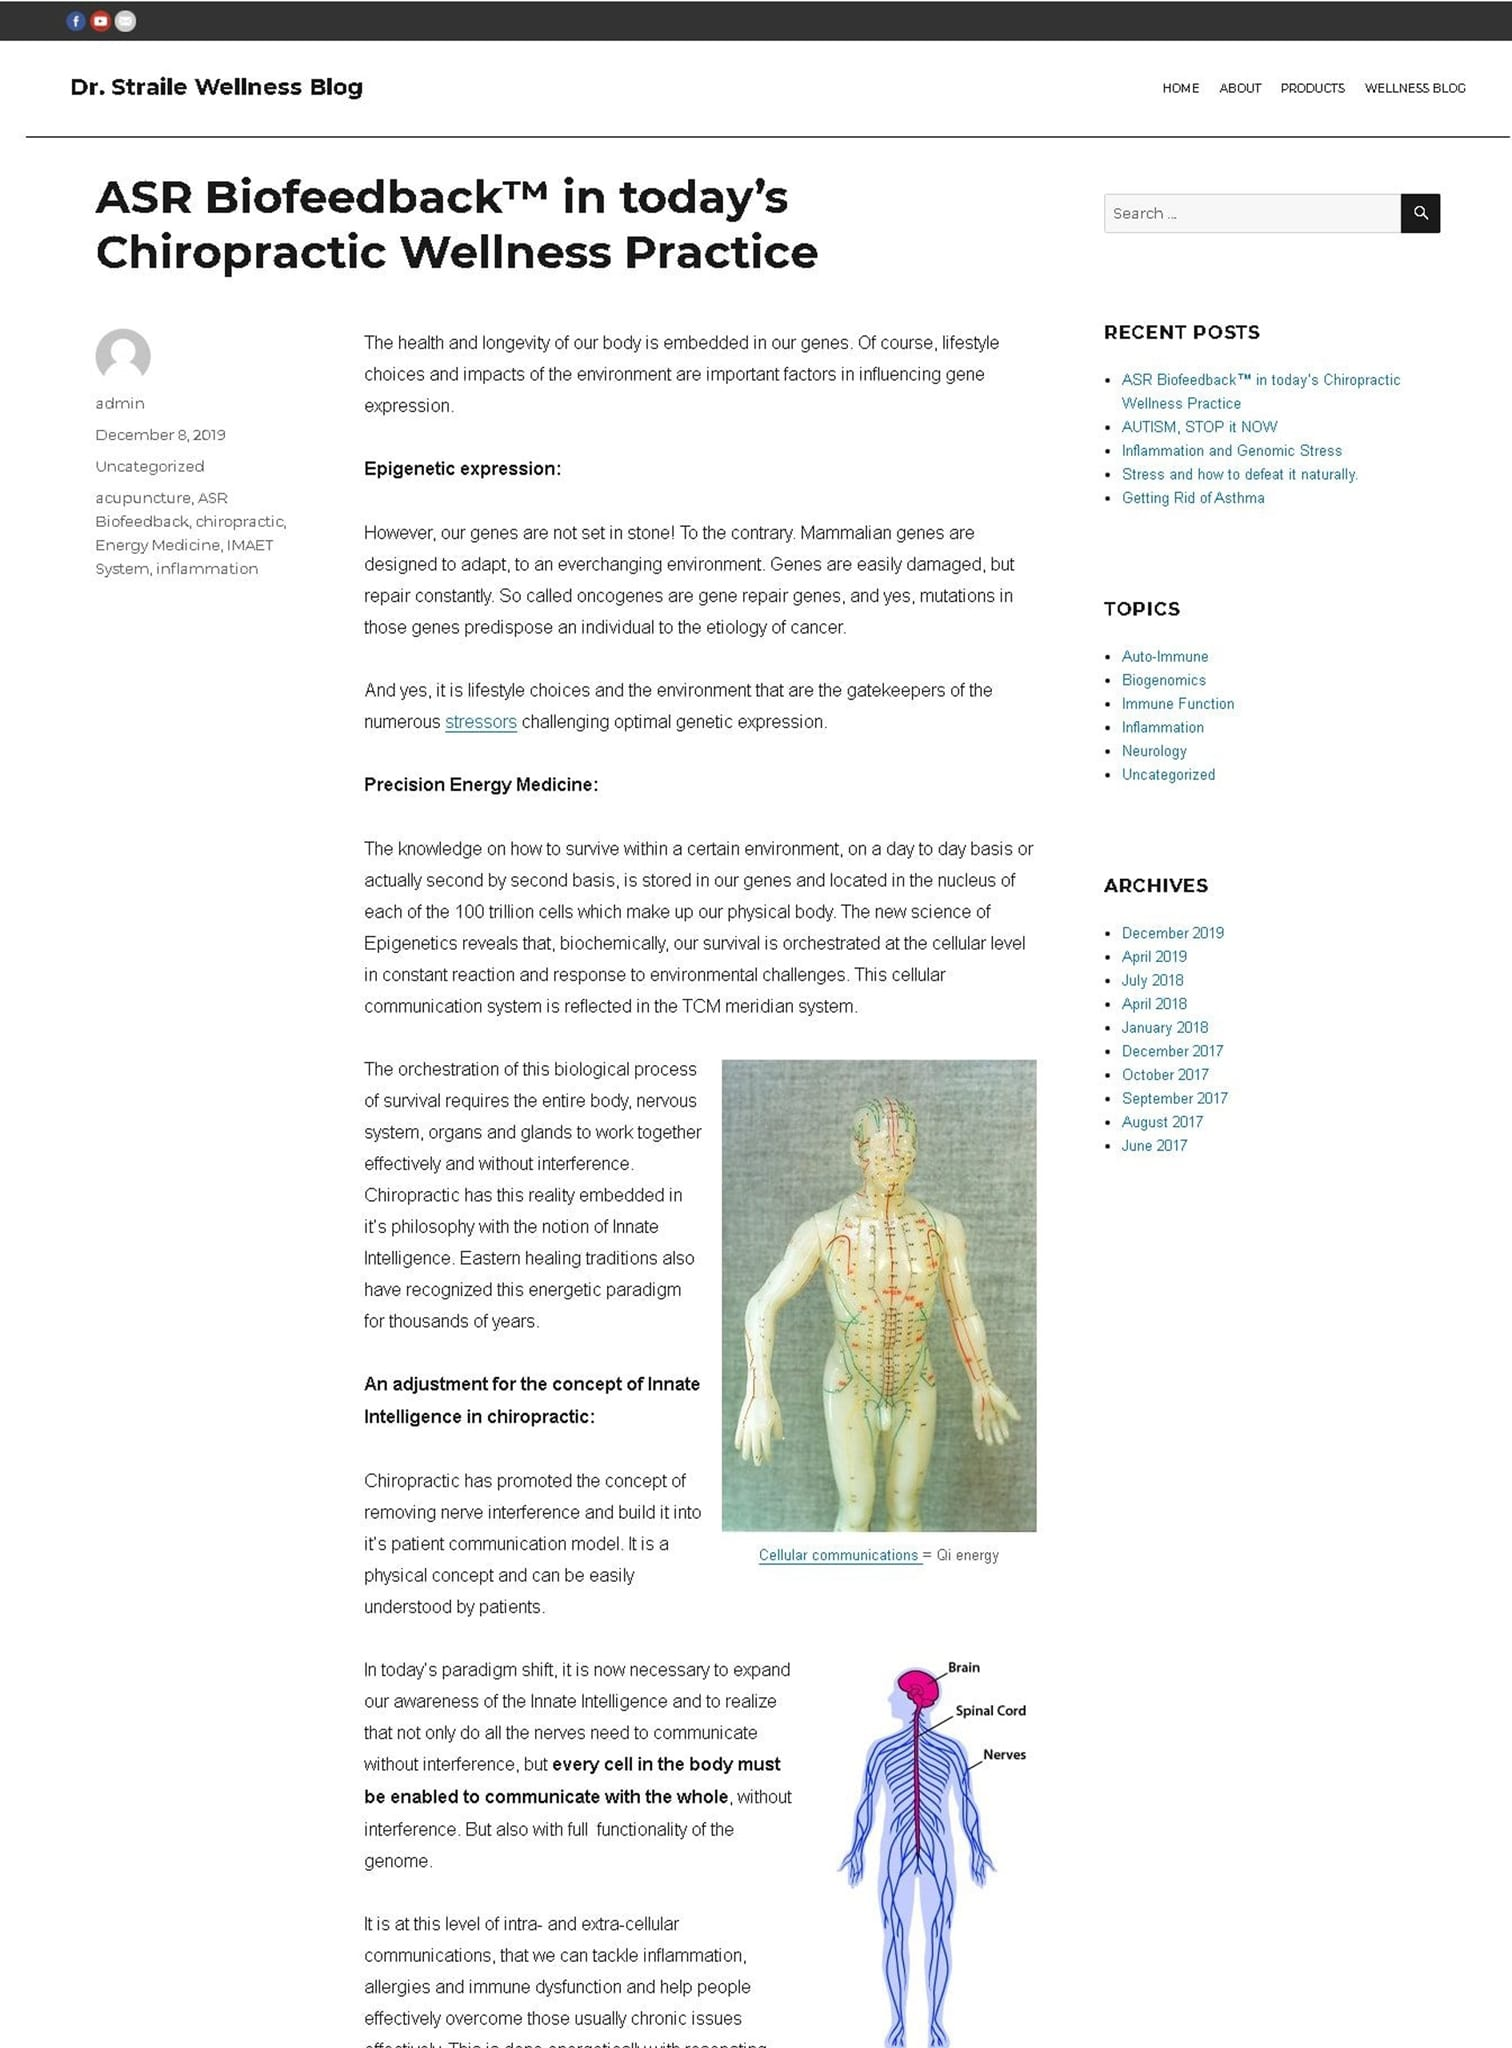 Dr. Straile Posts Page - Dr. Straile Wellness Blog iPad